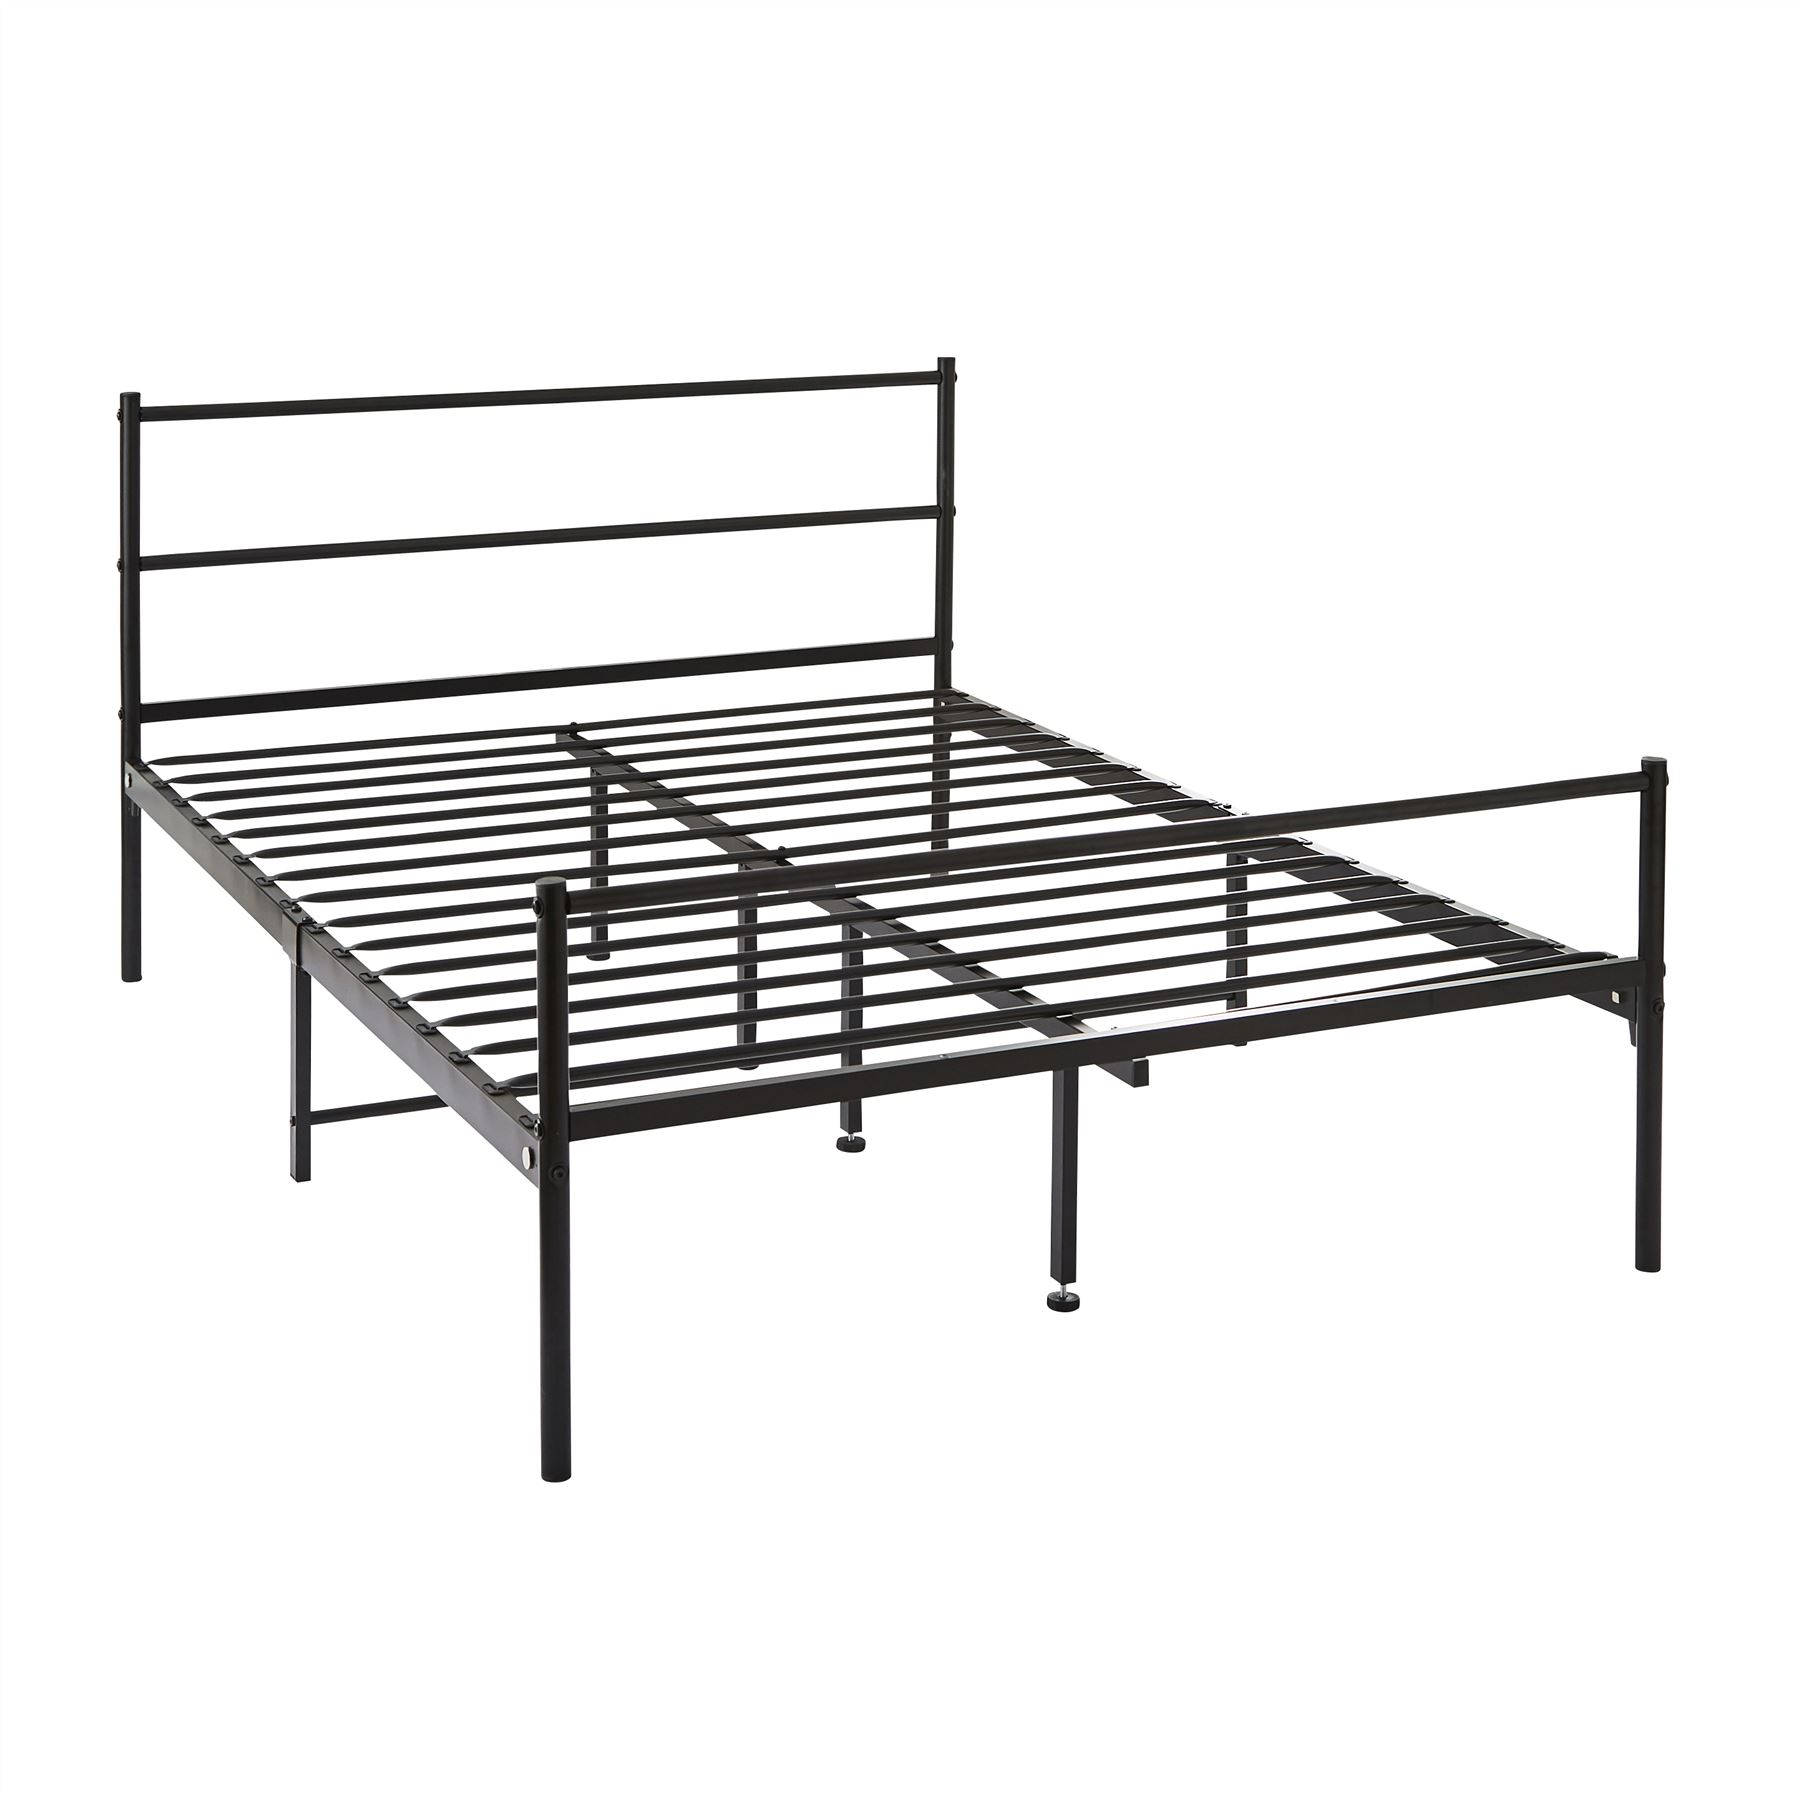 Groovy 4Ft6 Double Metal Bed Frame In Black Strong Bedroom Onthecornerstone Fun Painted Chair Ideas Images Onthecornerstoneorg